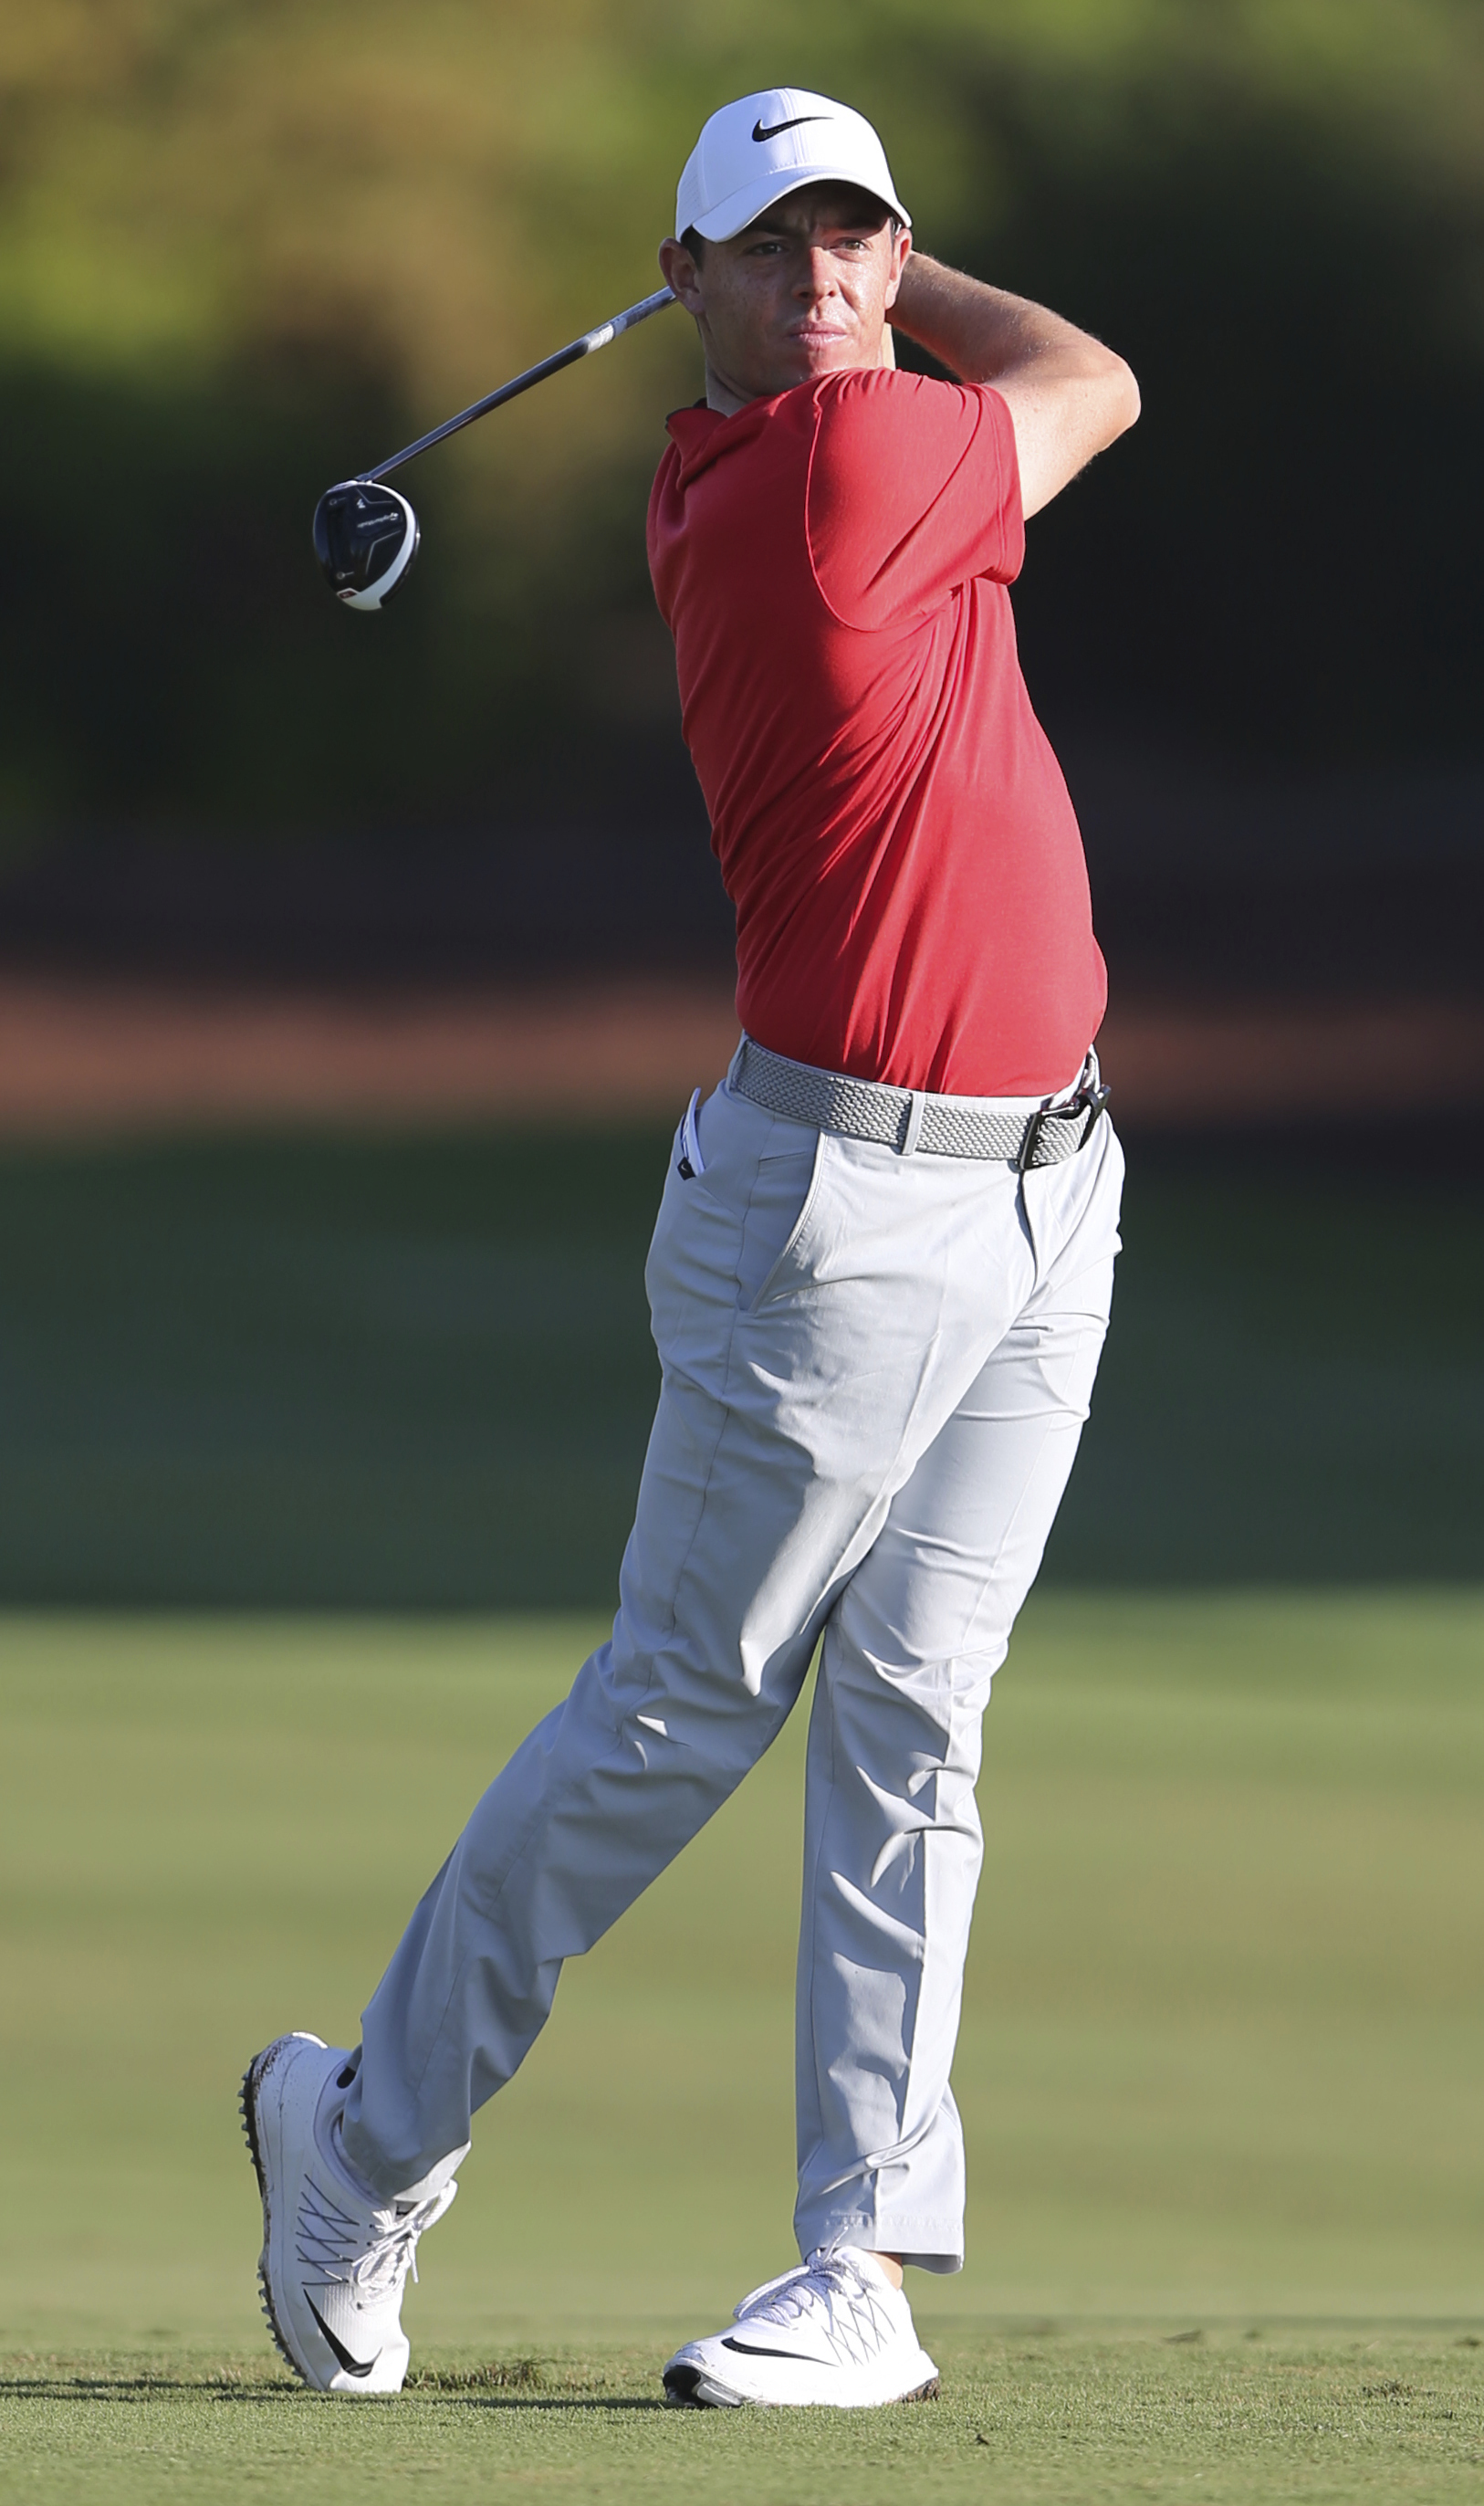 FILE - In this file photo dated Friday, Nov. 18, 2016, Rory McIlroy of Northern Ireland plays a shot on the 2nd hole during the 2nd round of the DP World Tour Championship golf tournament in Dubai, United Arab Emirates. McIlroy has said Tuesday Jan. 24, 2